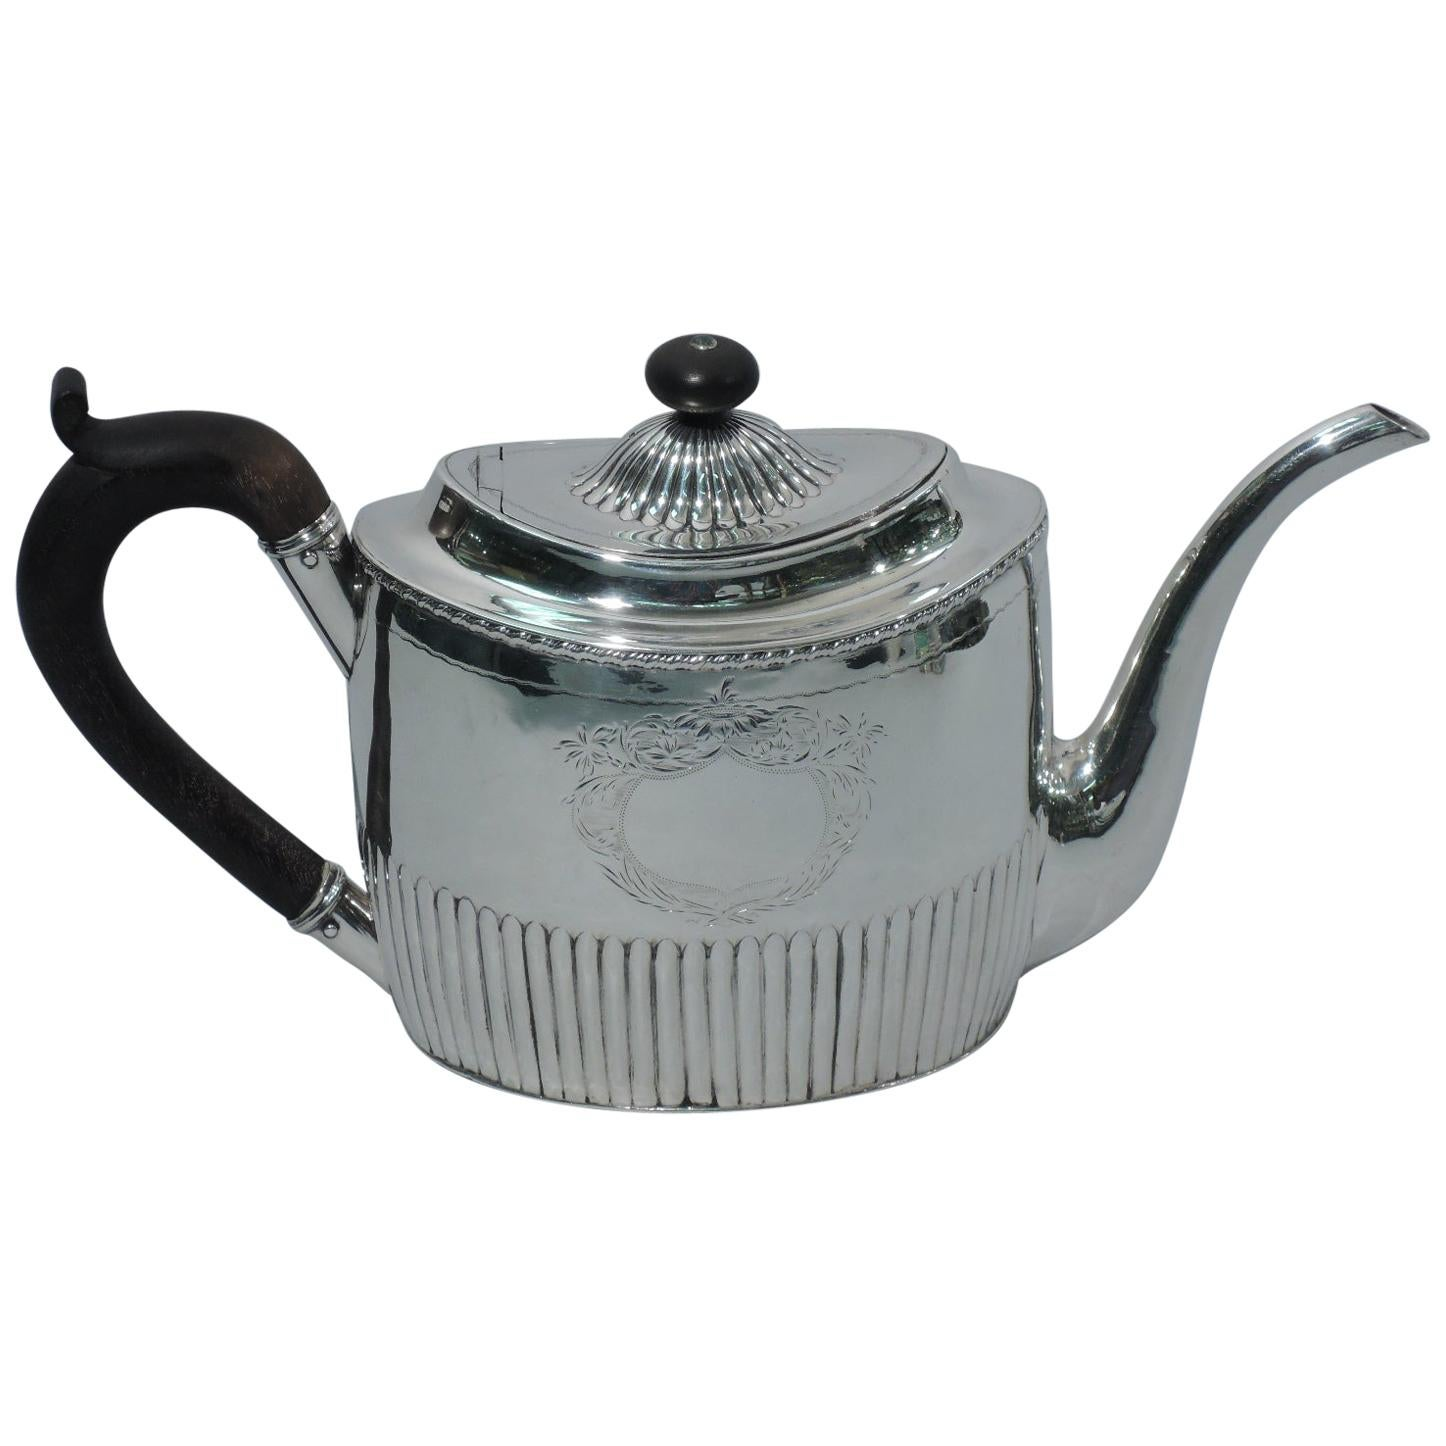 Antique English Georgian Neoclassical Sterling Silver Teapot